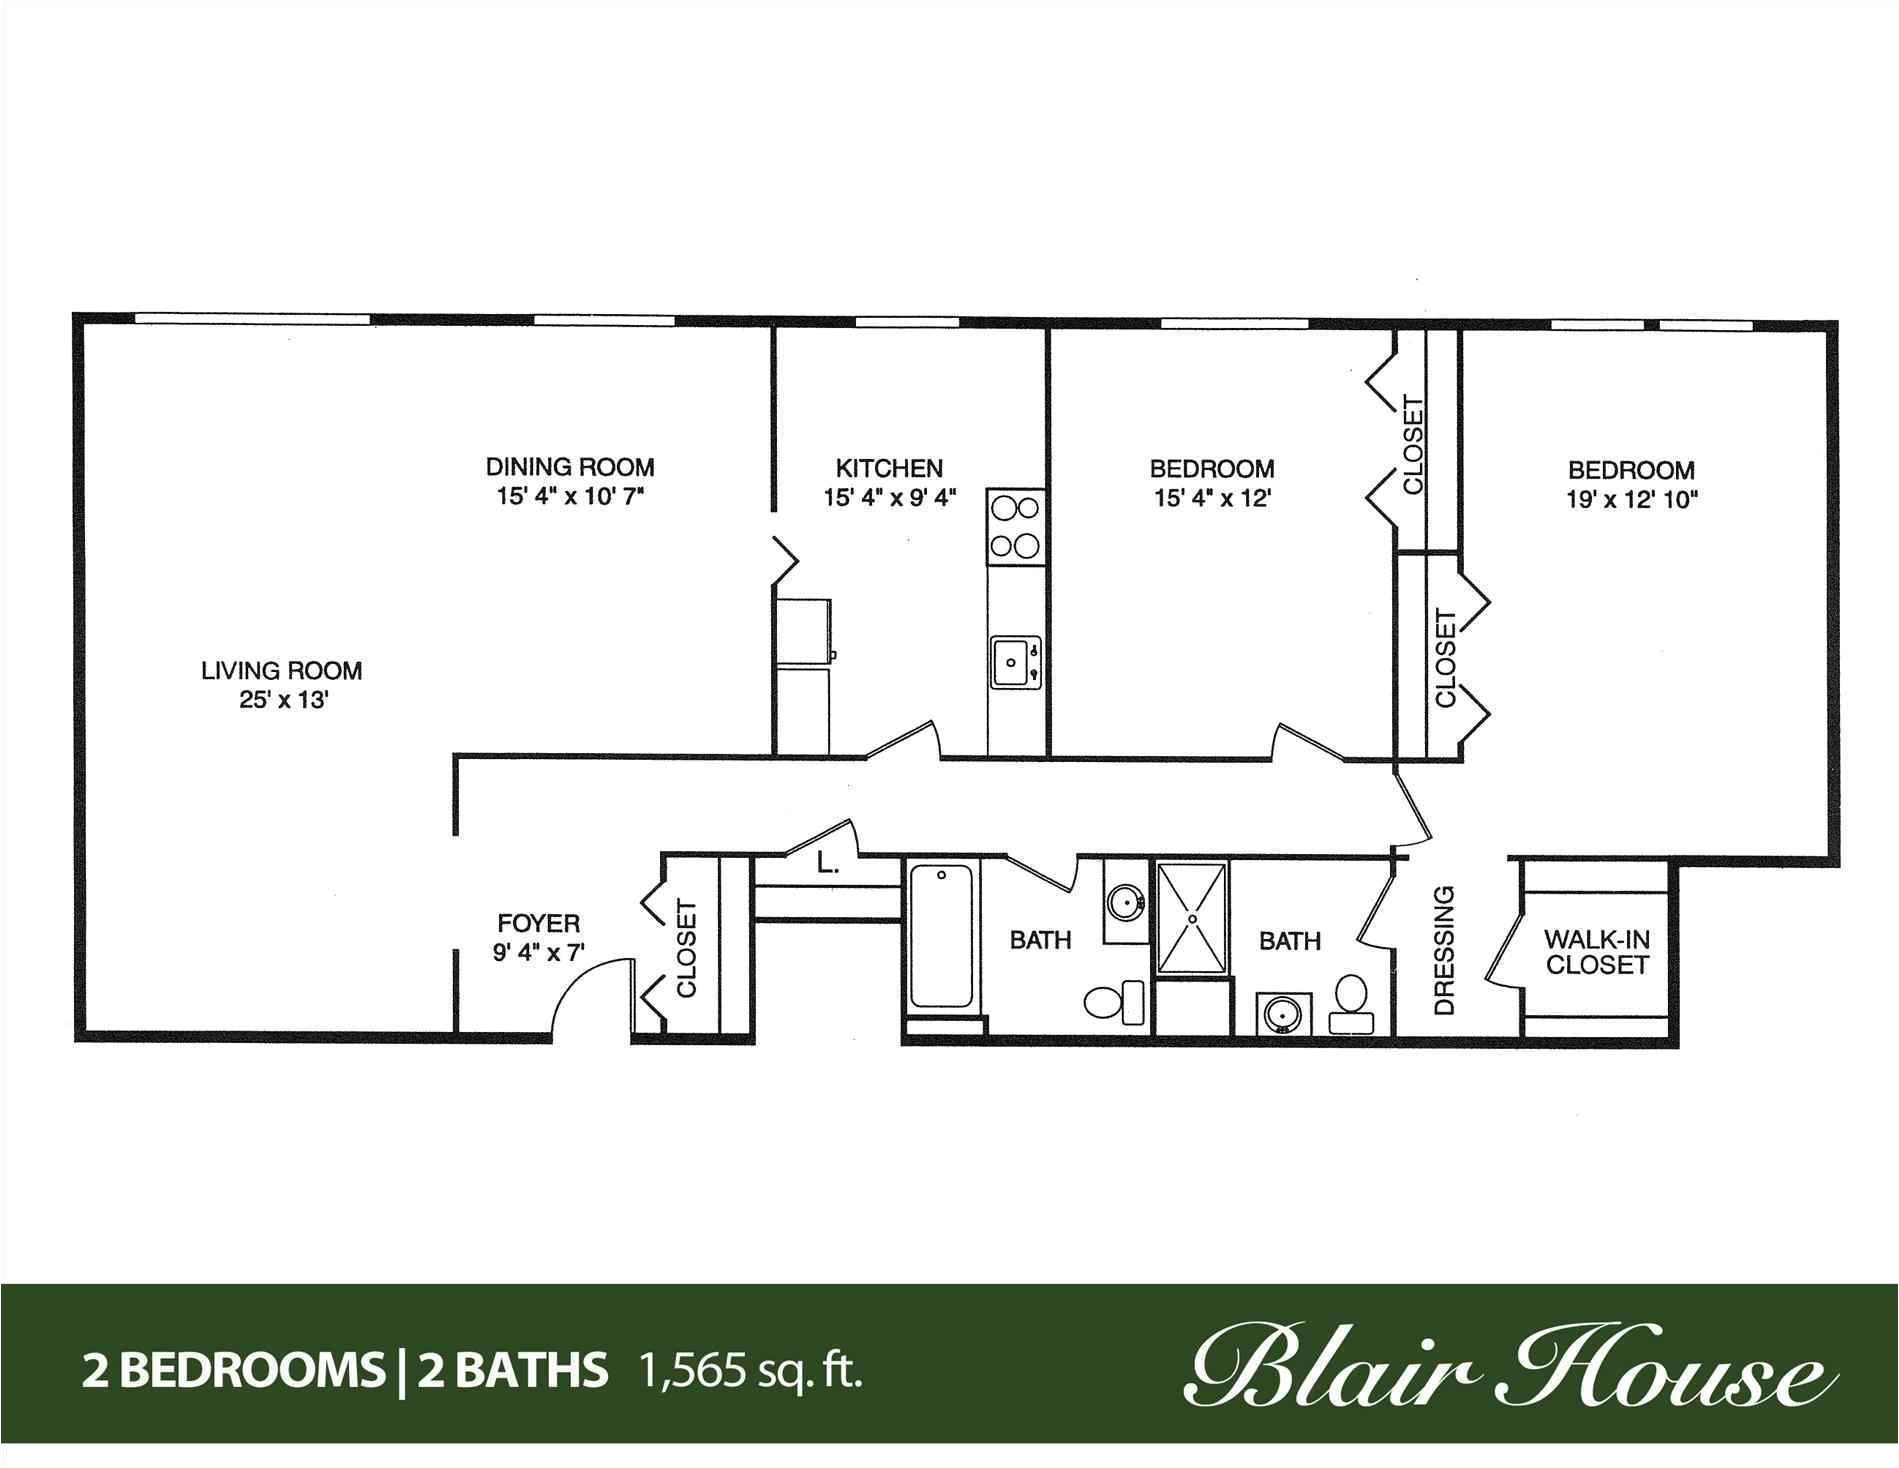 plans small apartment floor remodel plan floor 1 bedroom tiny house plans plan awesome low cost small about remodel interior awesome 1 bedroom tiny jpg